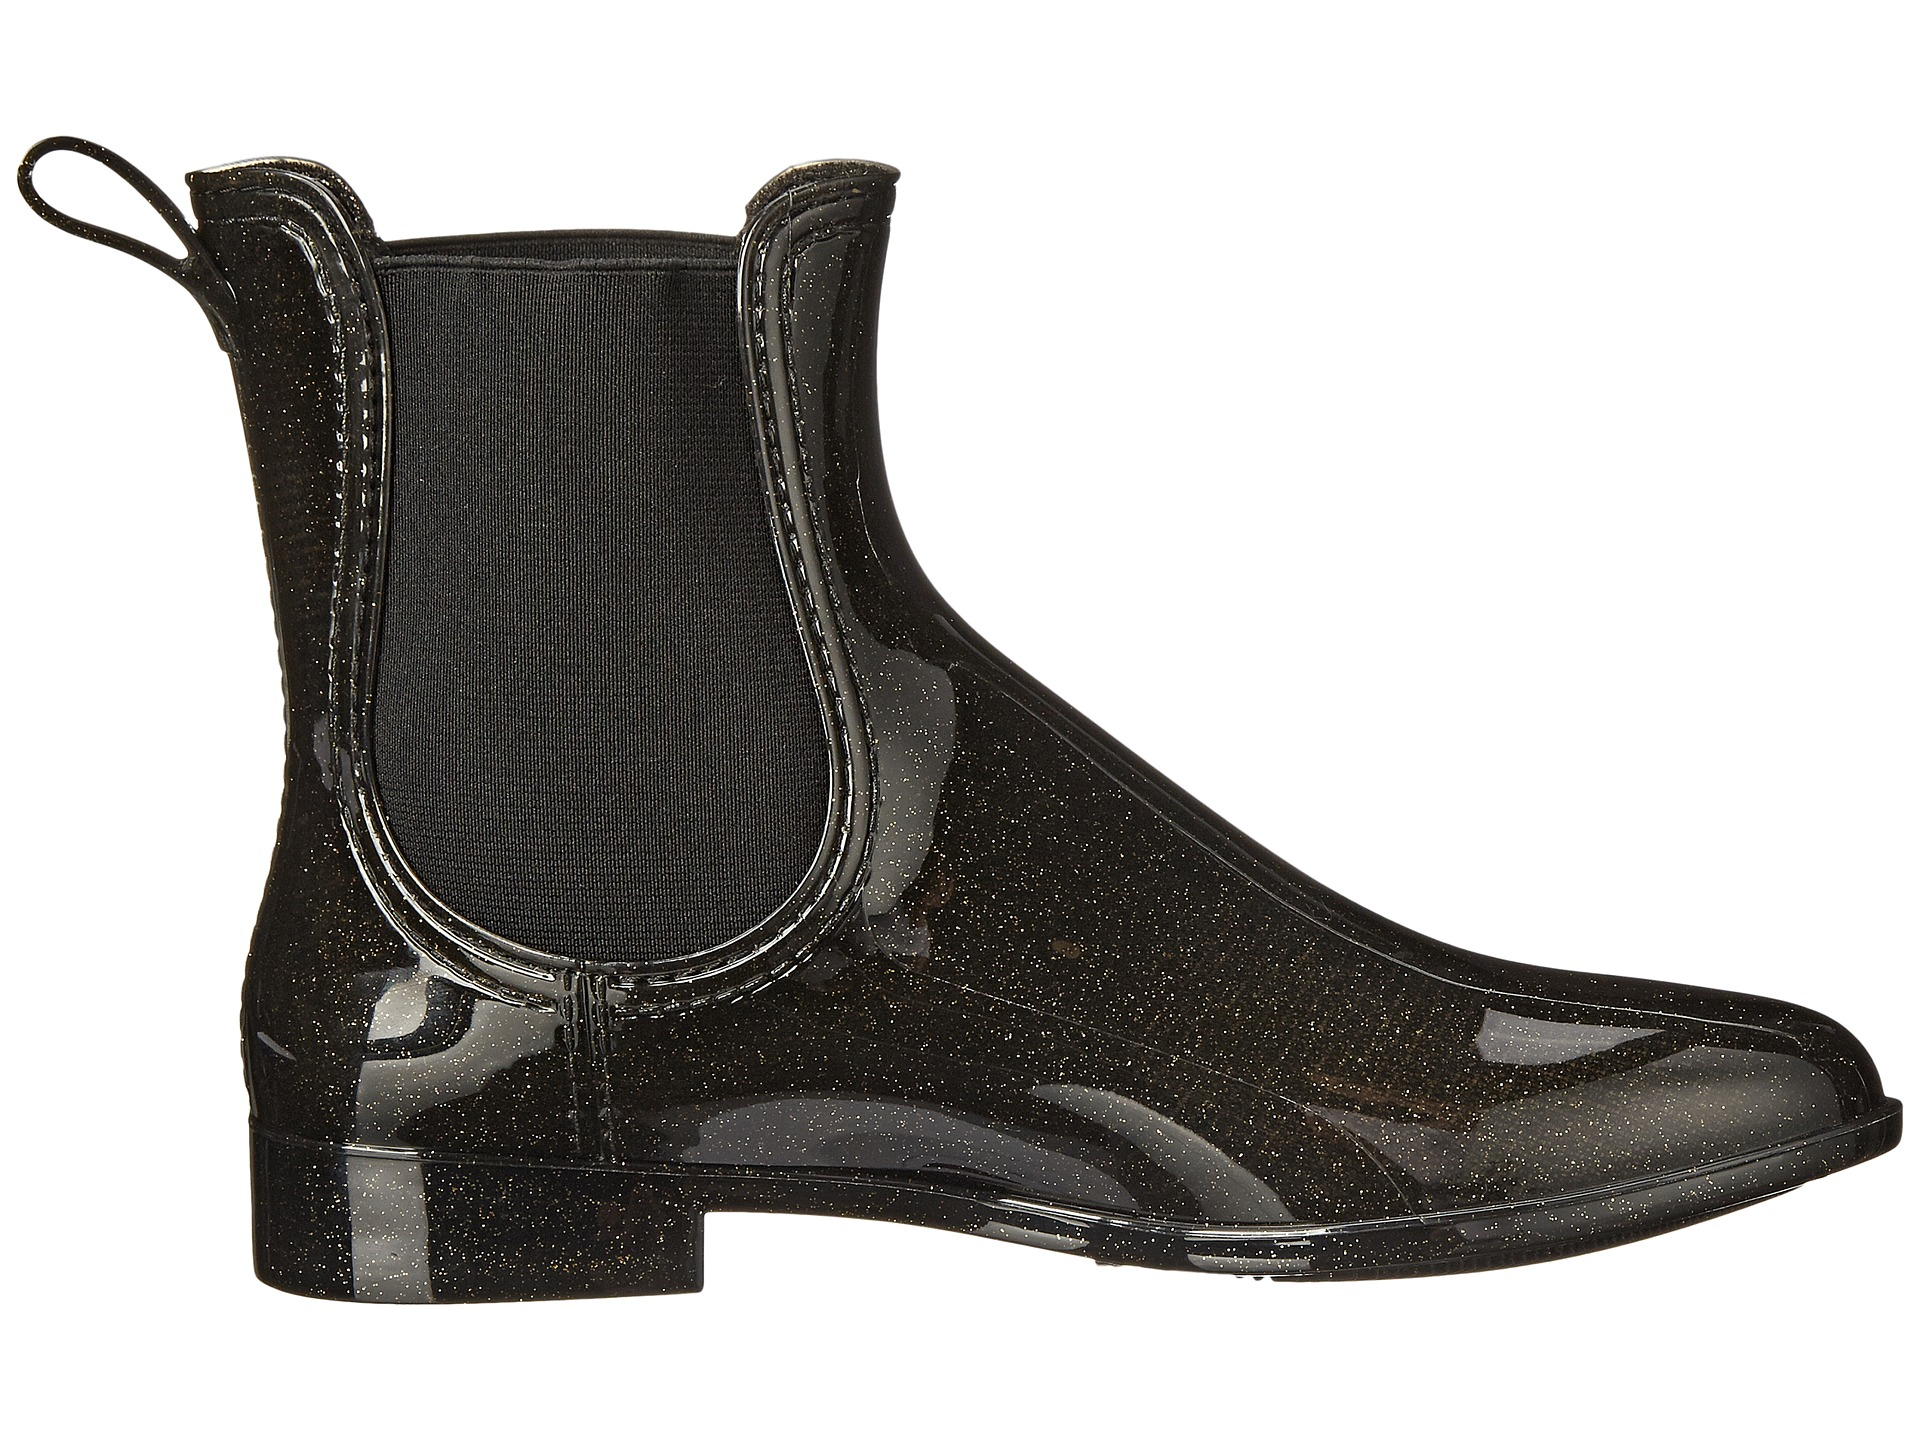 m missoni sparkly boot in black lyst